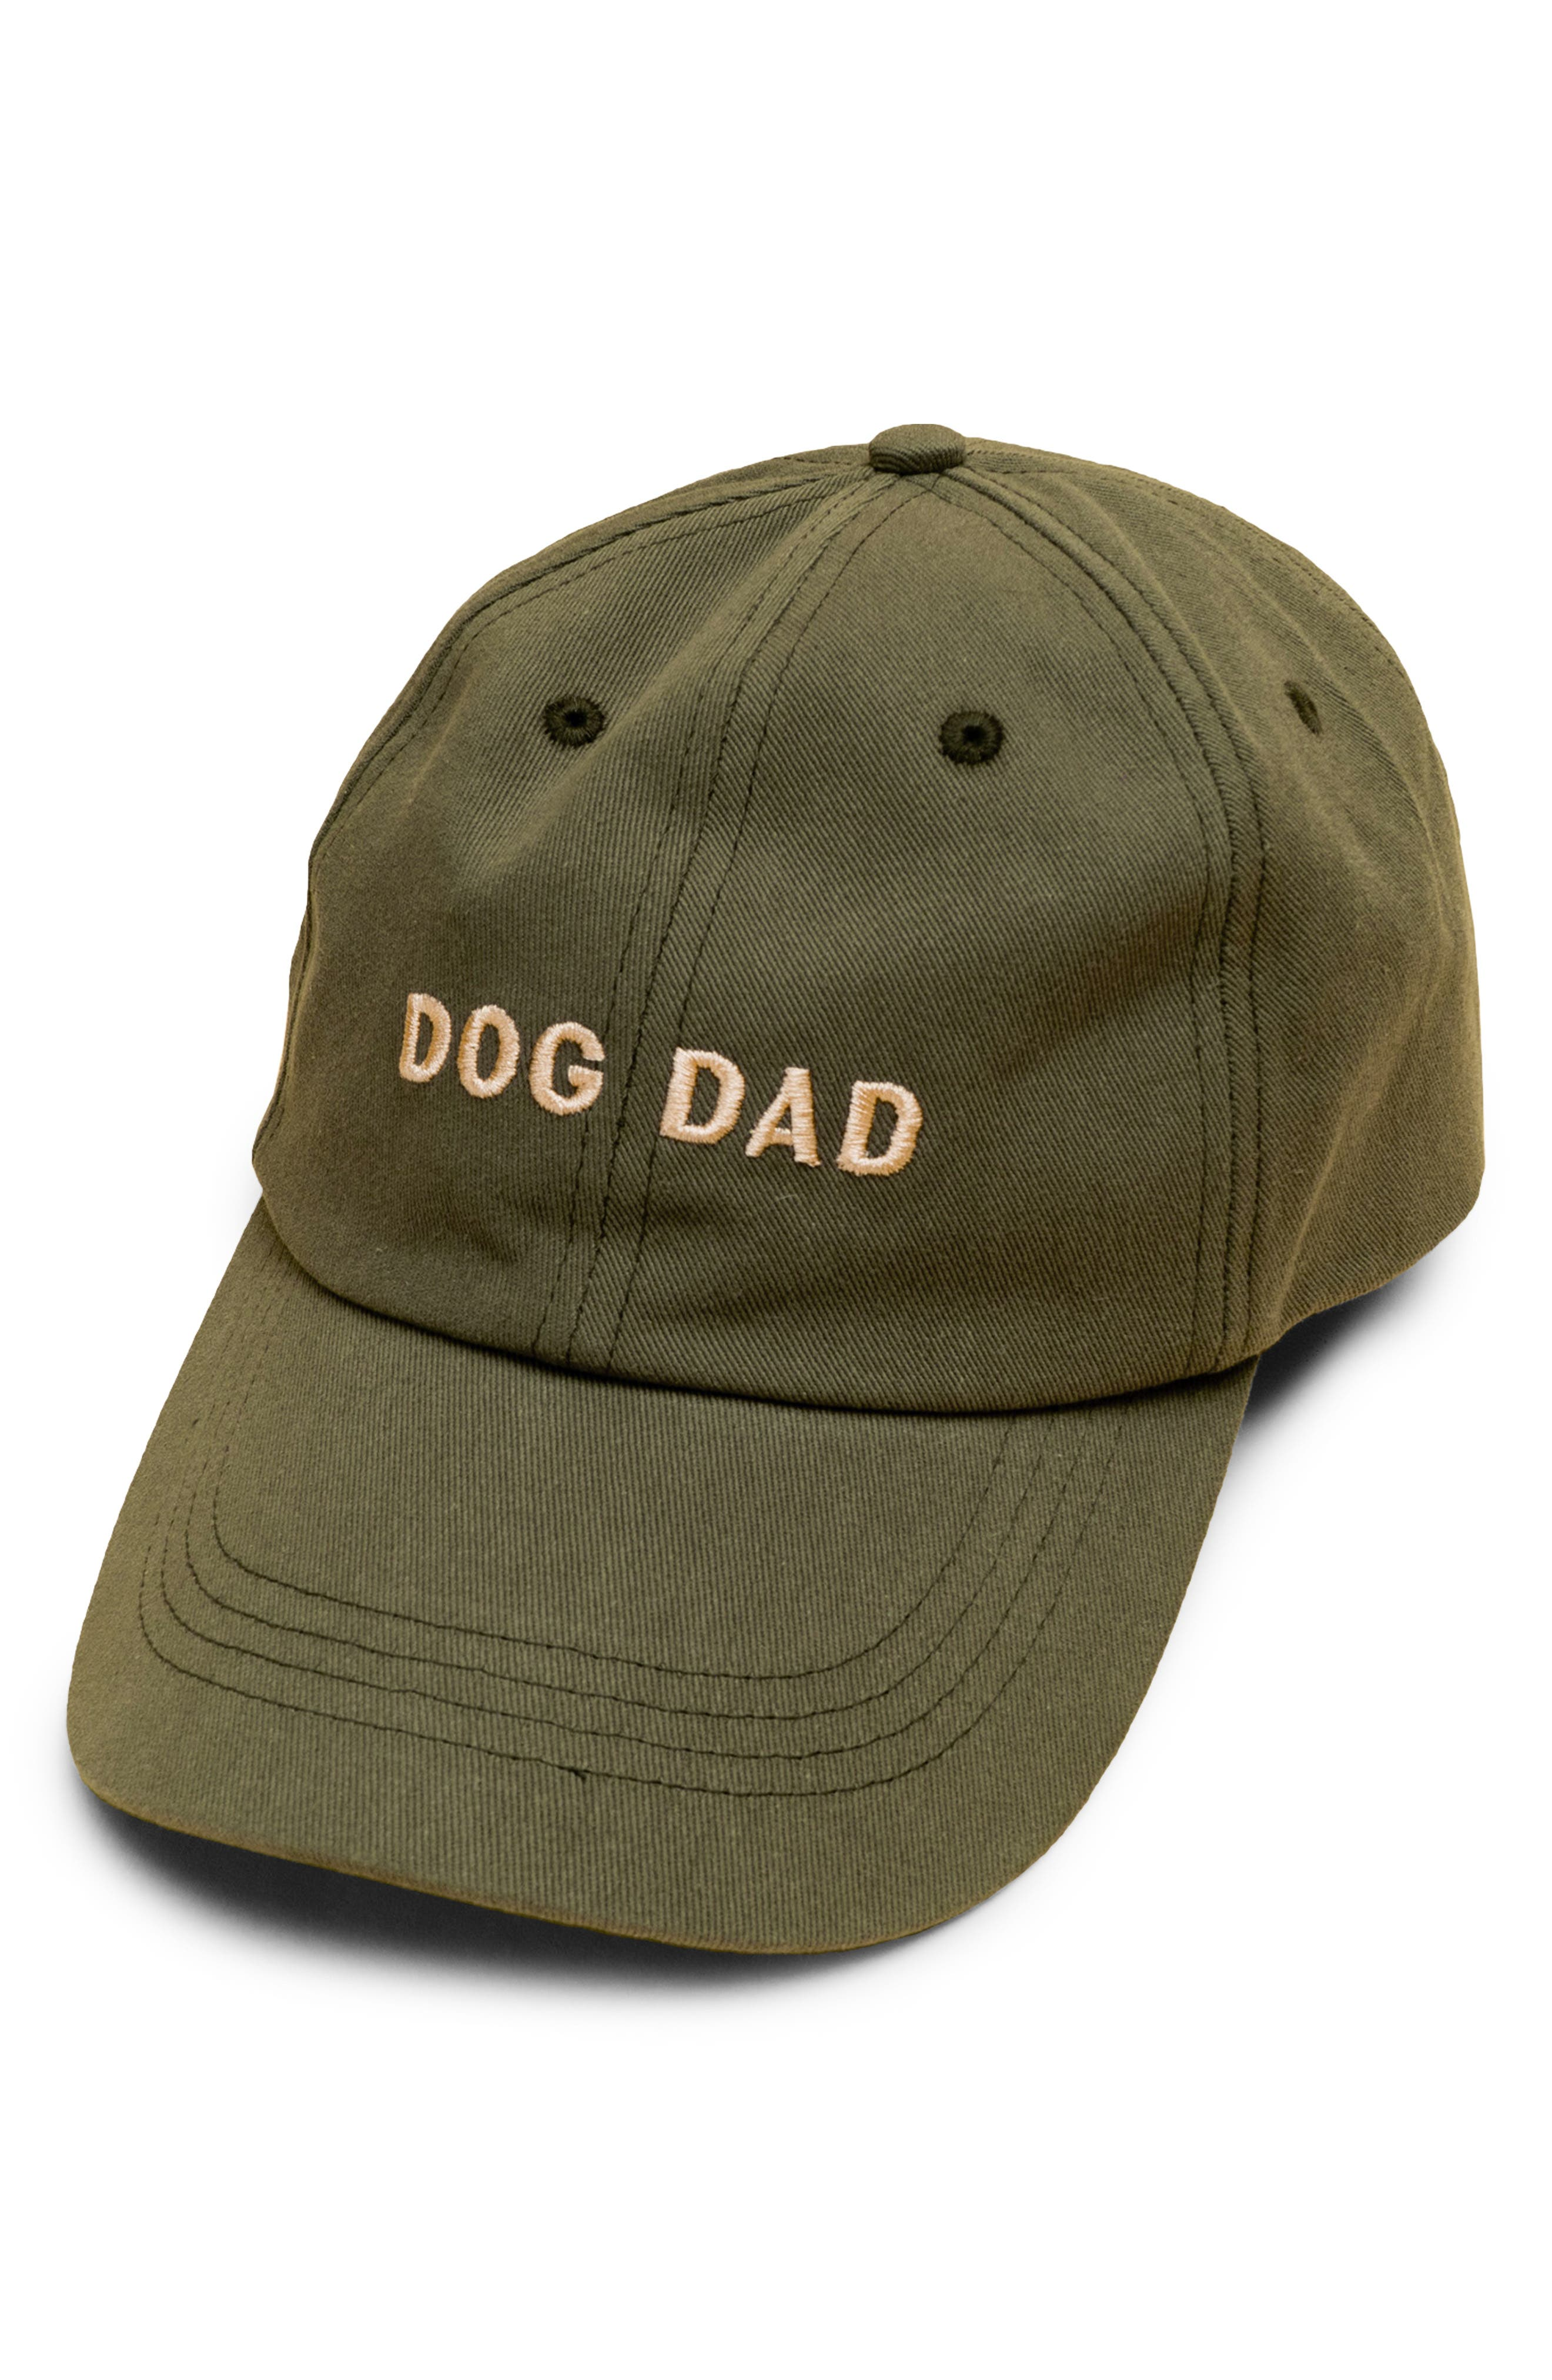 Lucy & Co. Dog Dad Baseball Hat